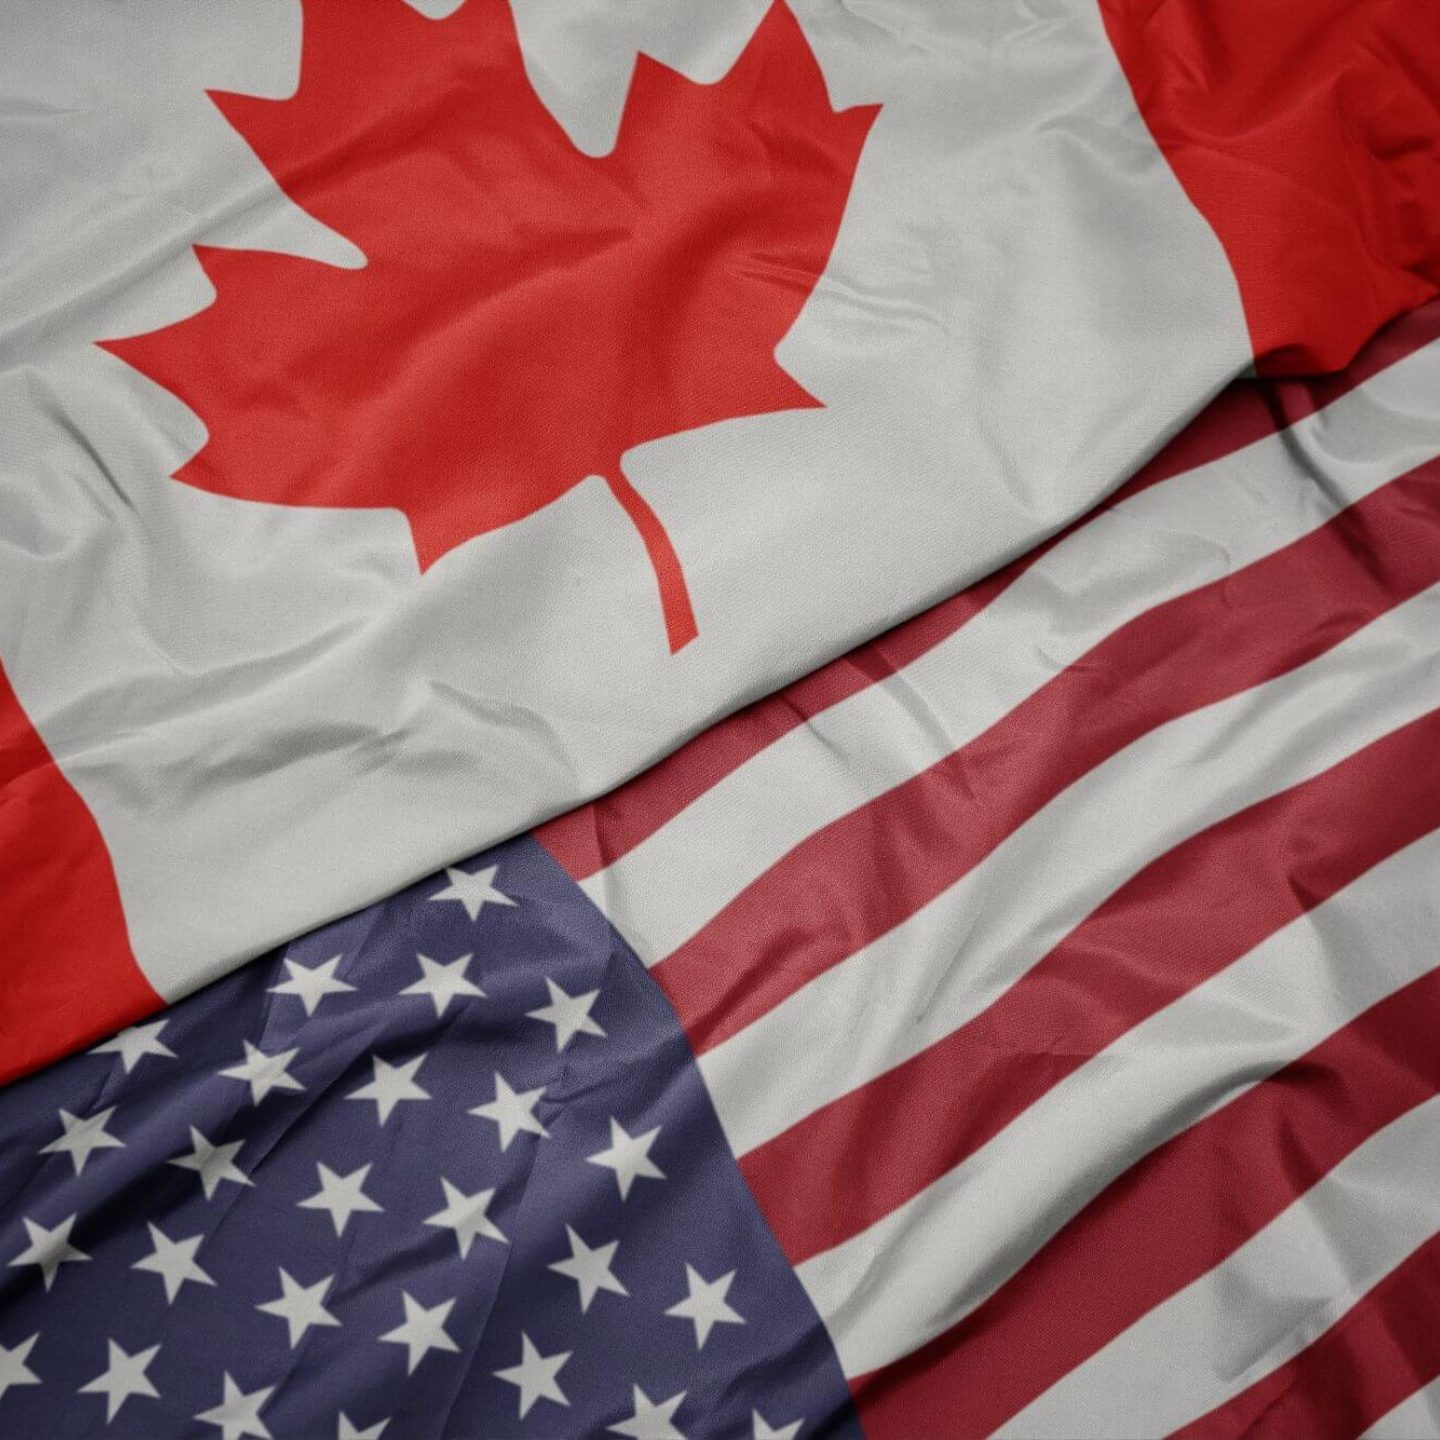 Canada and US Flag - Overview of Electrical Certification in the U.S. and Canada | NSF International